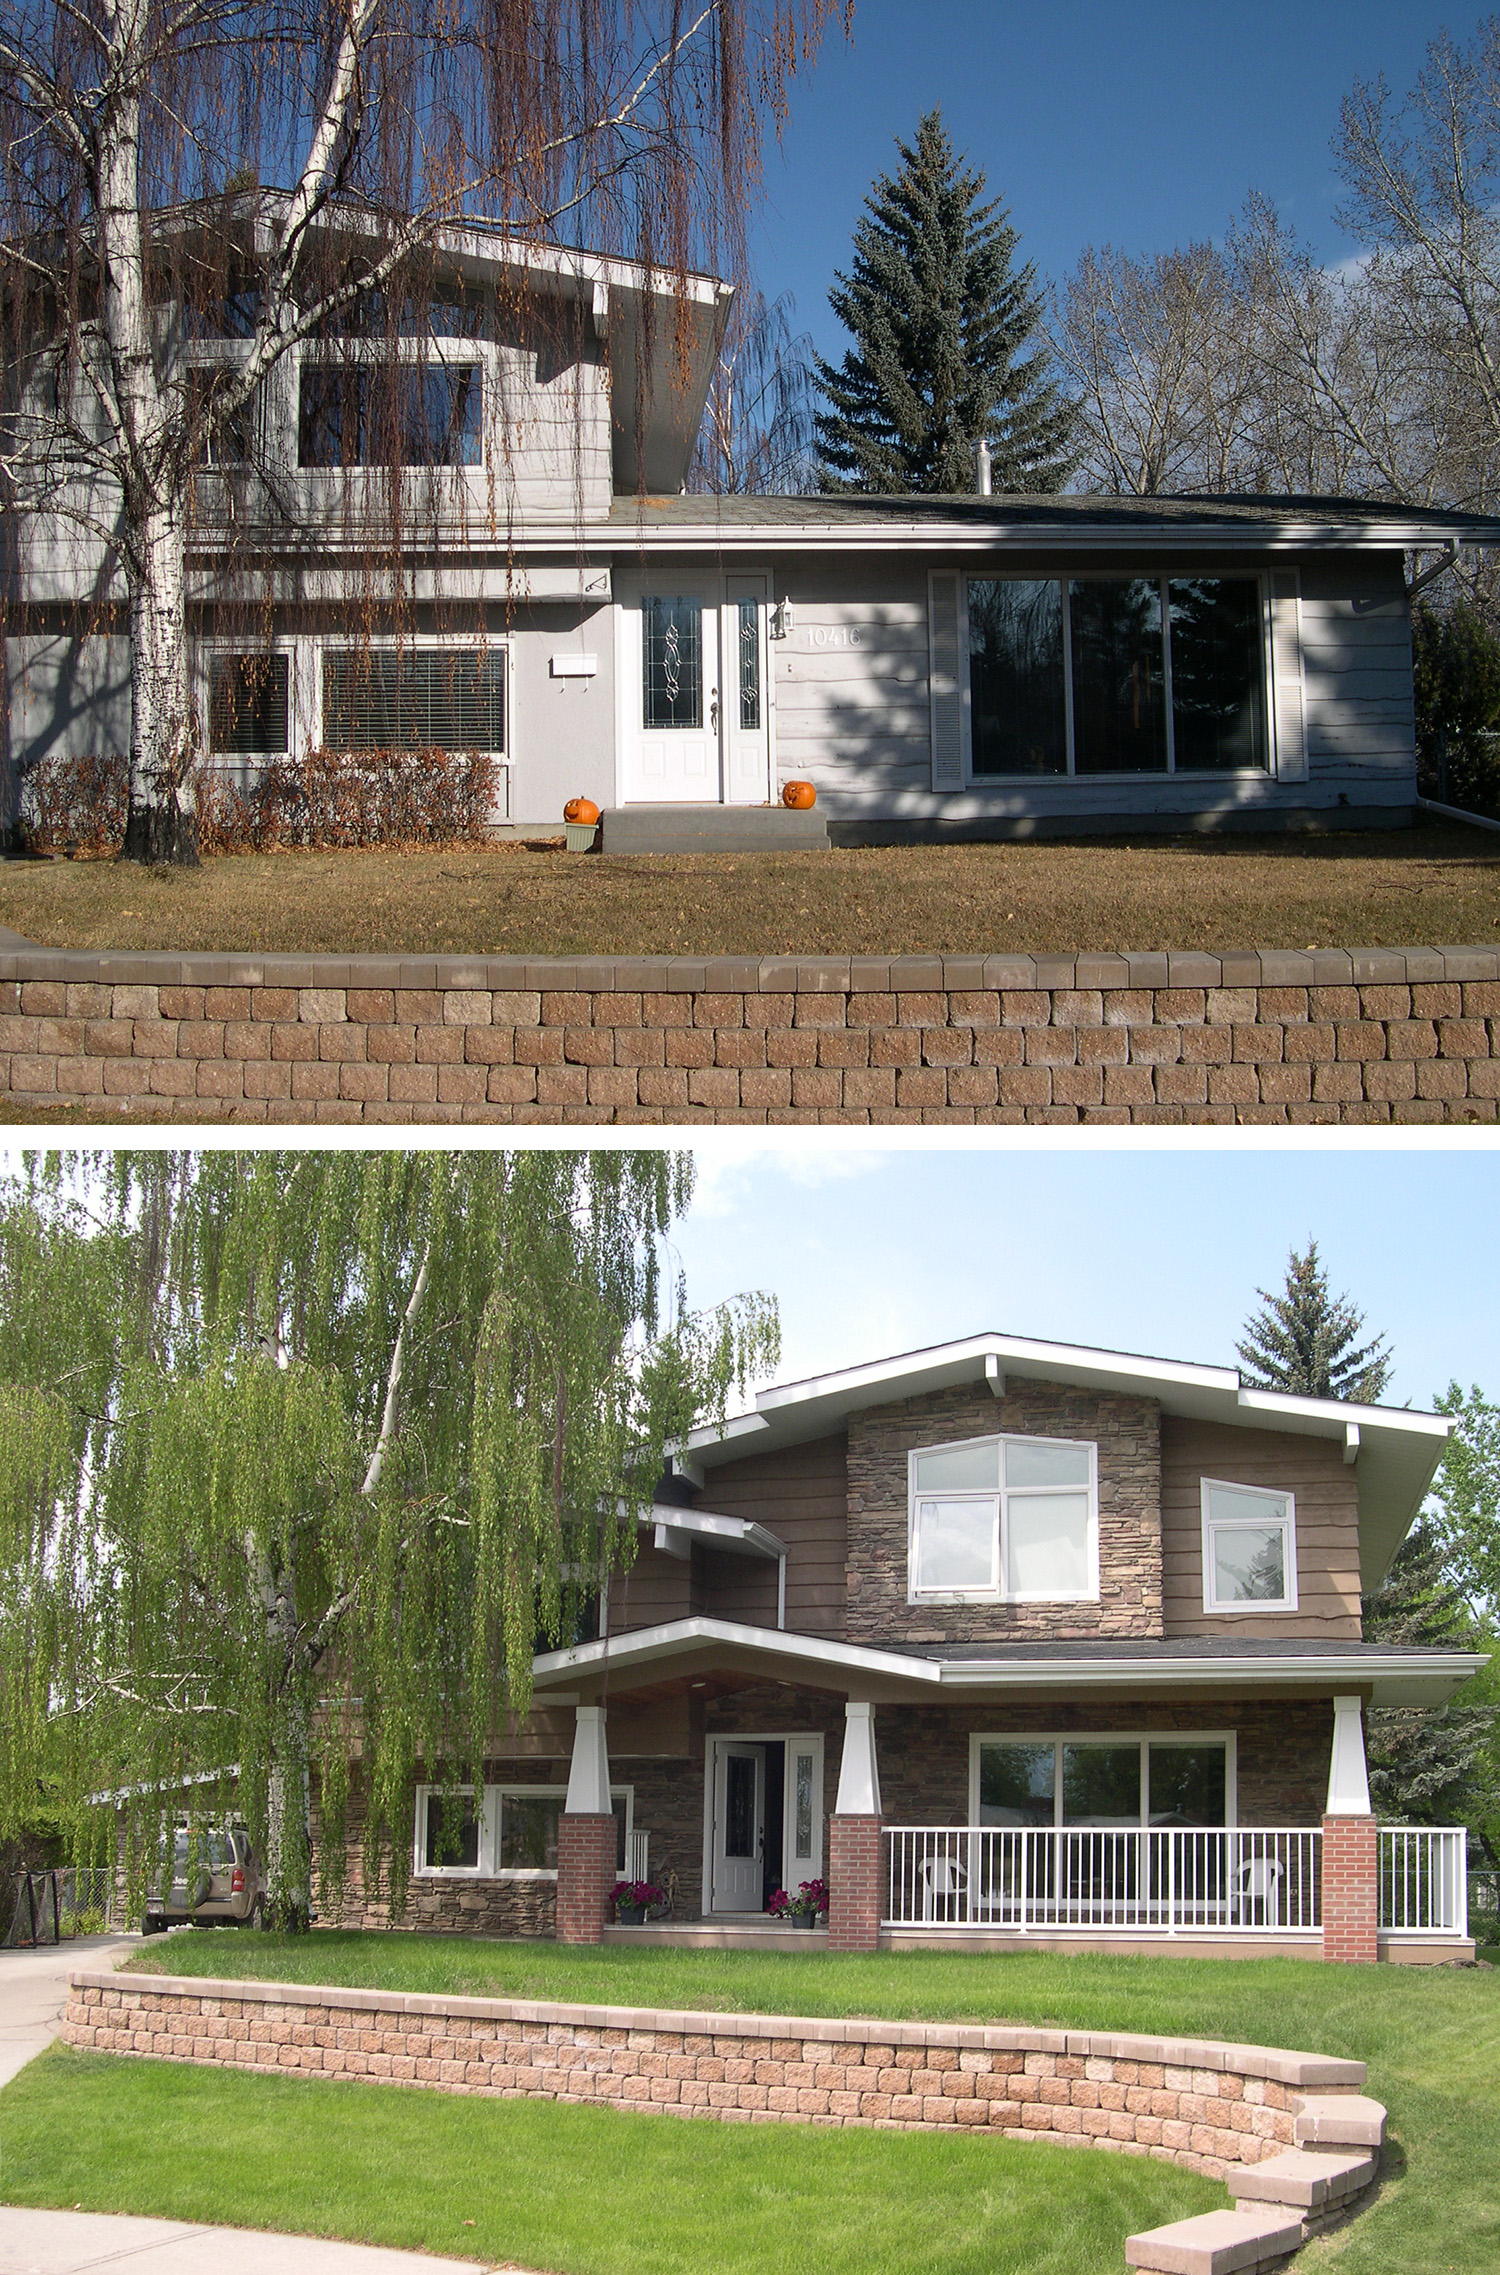 Before & After of a Home Addition in the Calgary community of Acadia